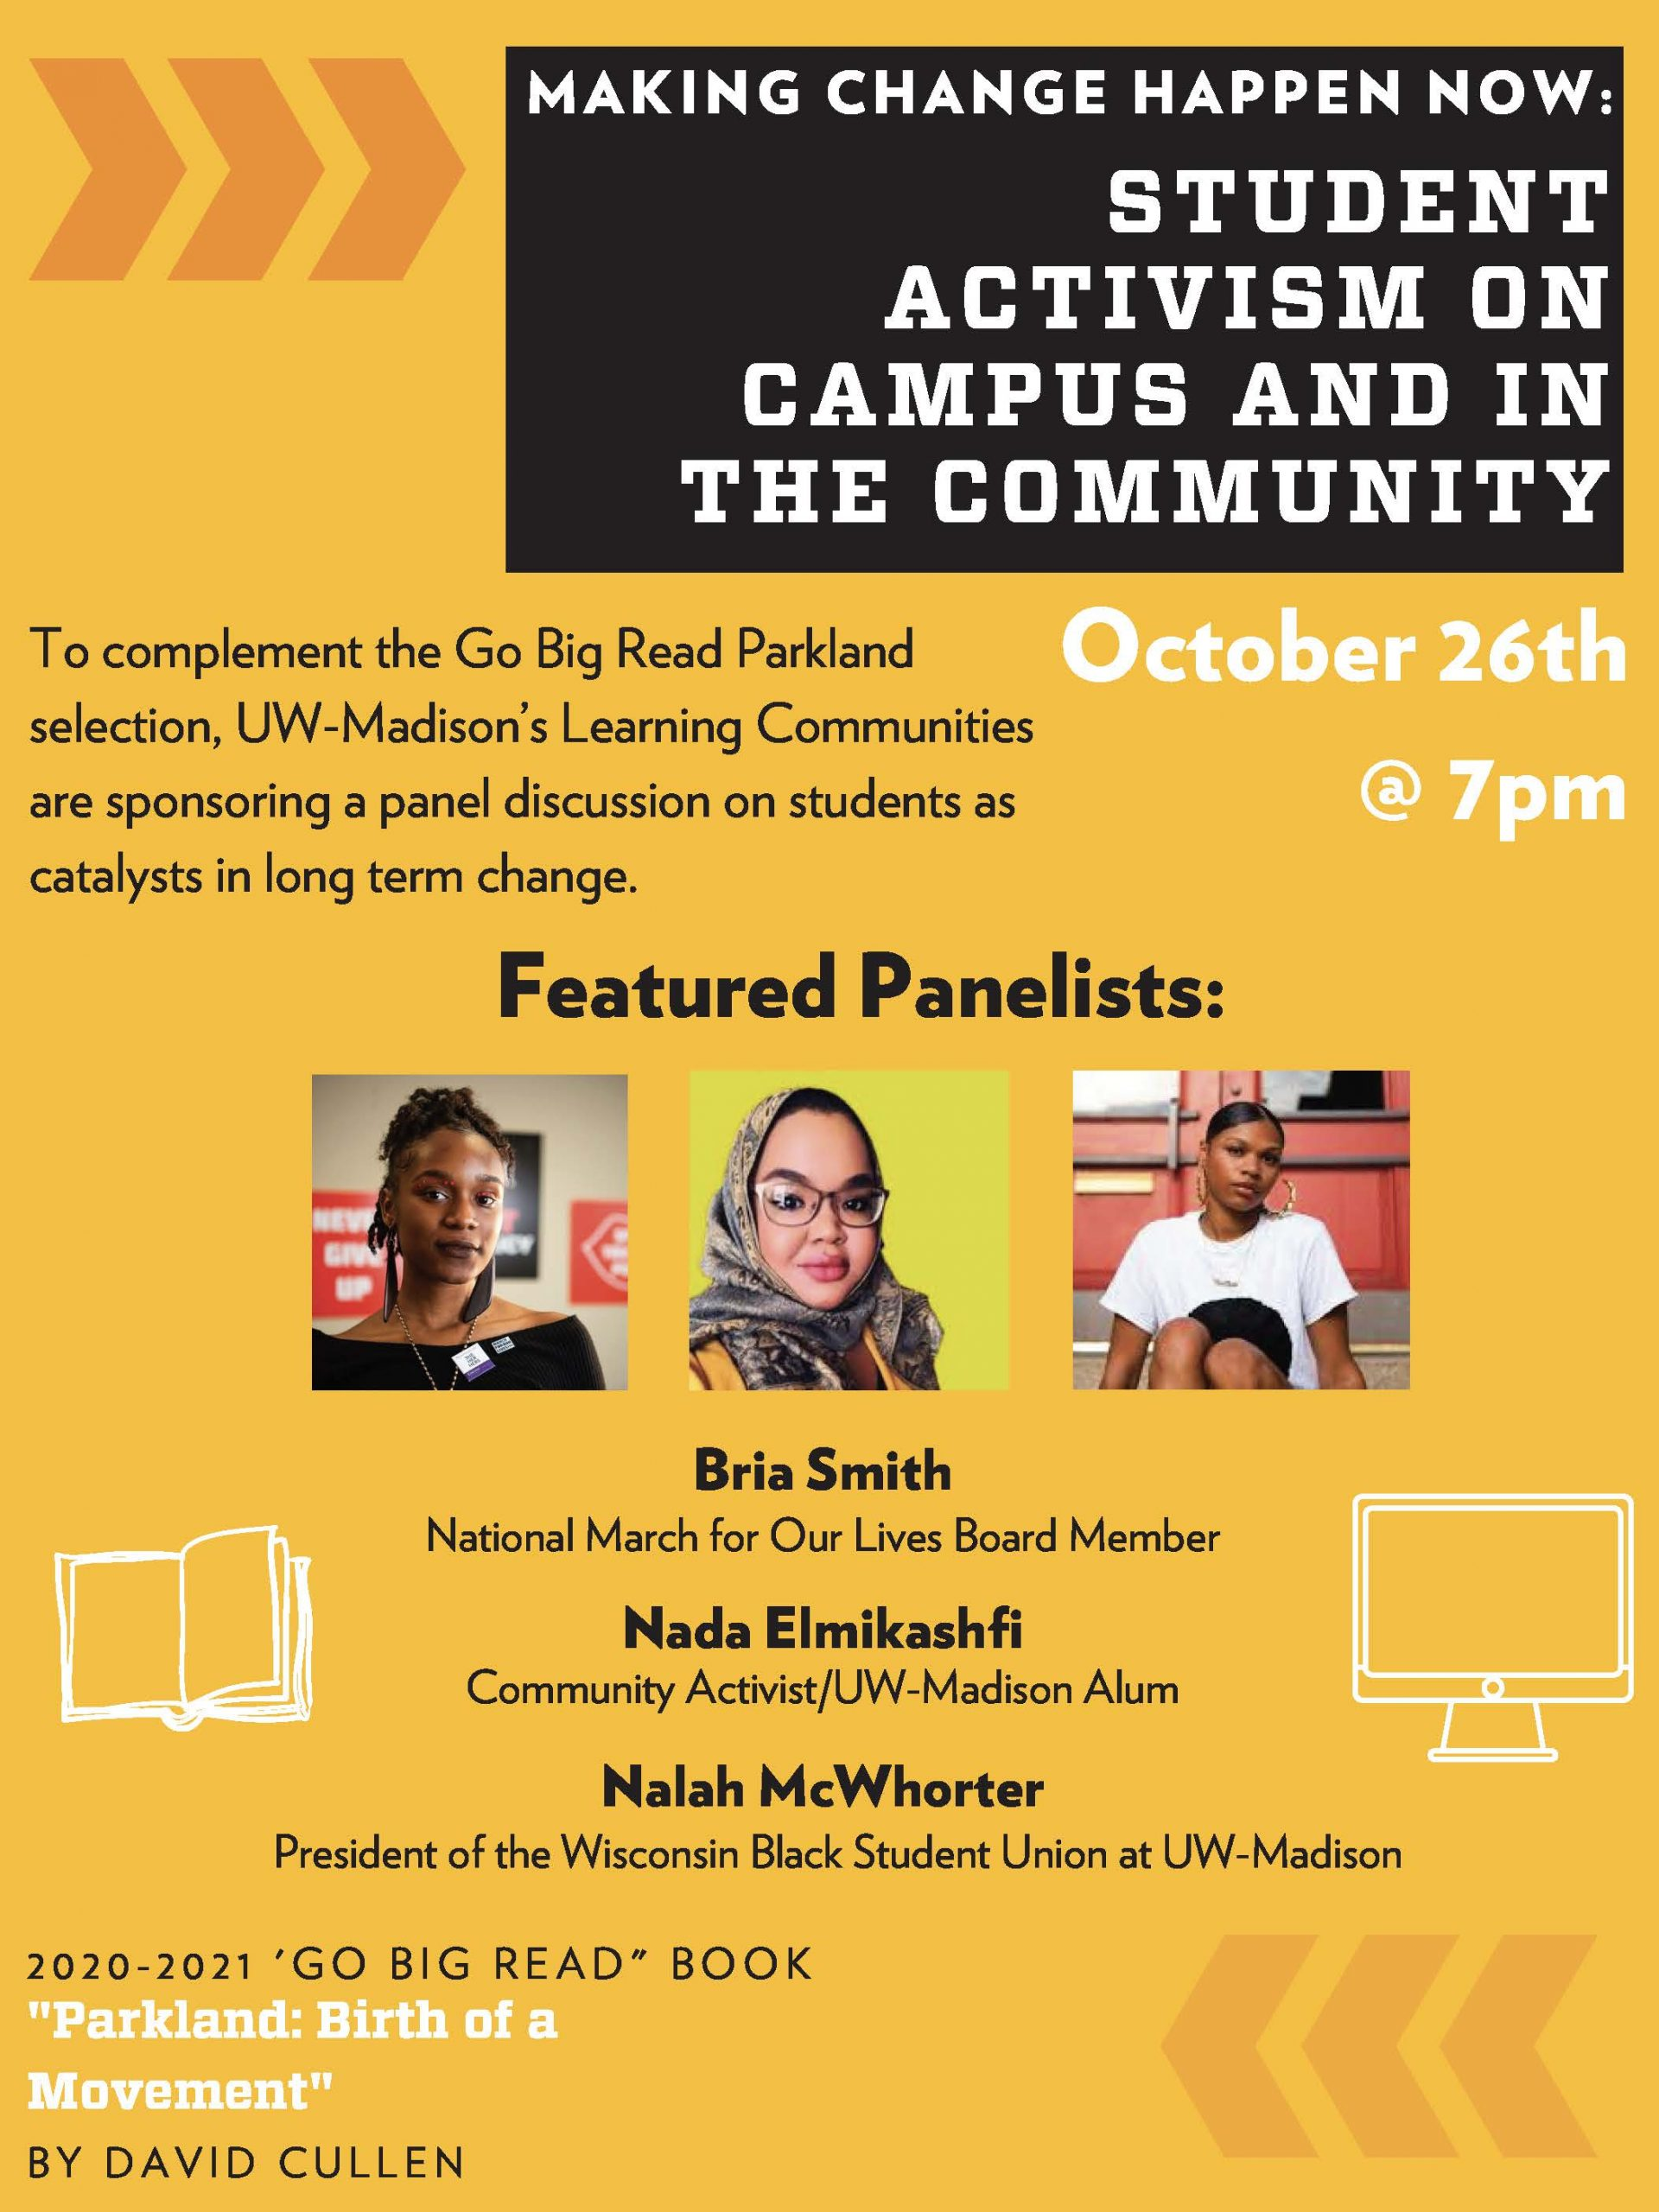 Making Change Happen Now: Student Activism on Campus and in the Community, Oct. 26 at 7pm